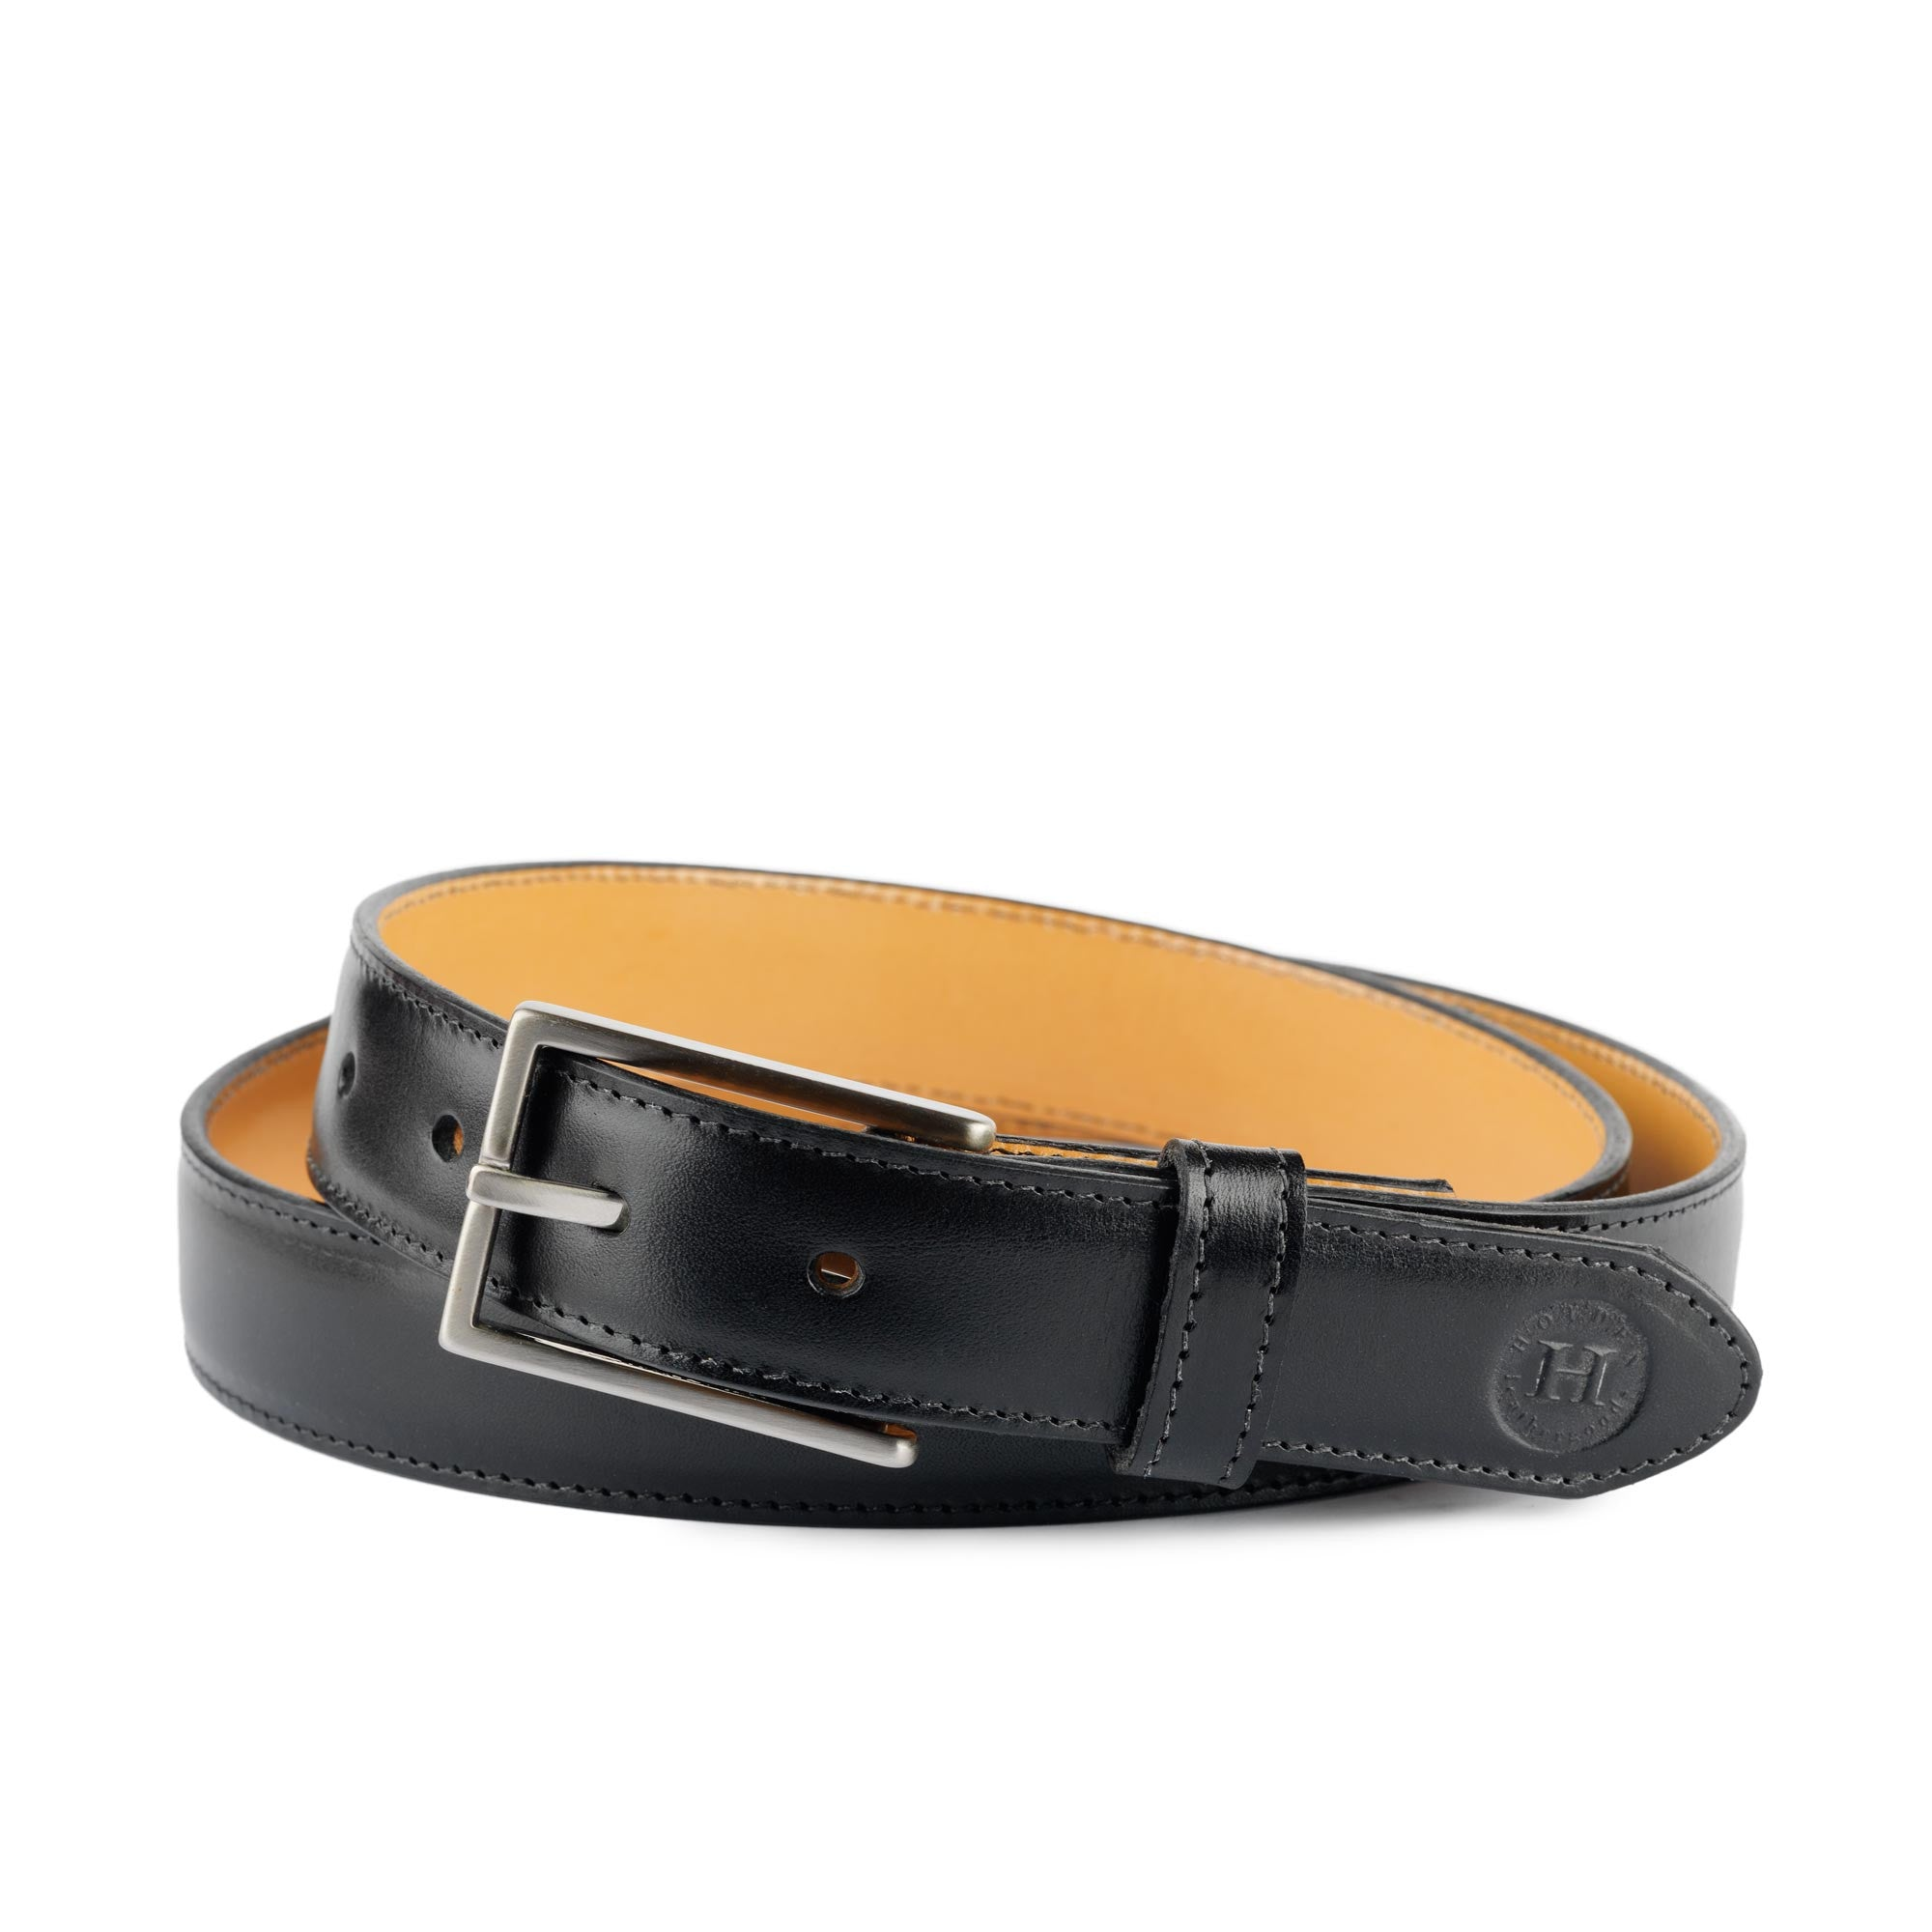 Holden Leather Dress Belt DB1 Black - Holden Leathergoods, leather bags handmade in Ireland